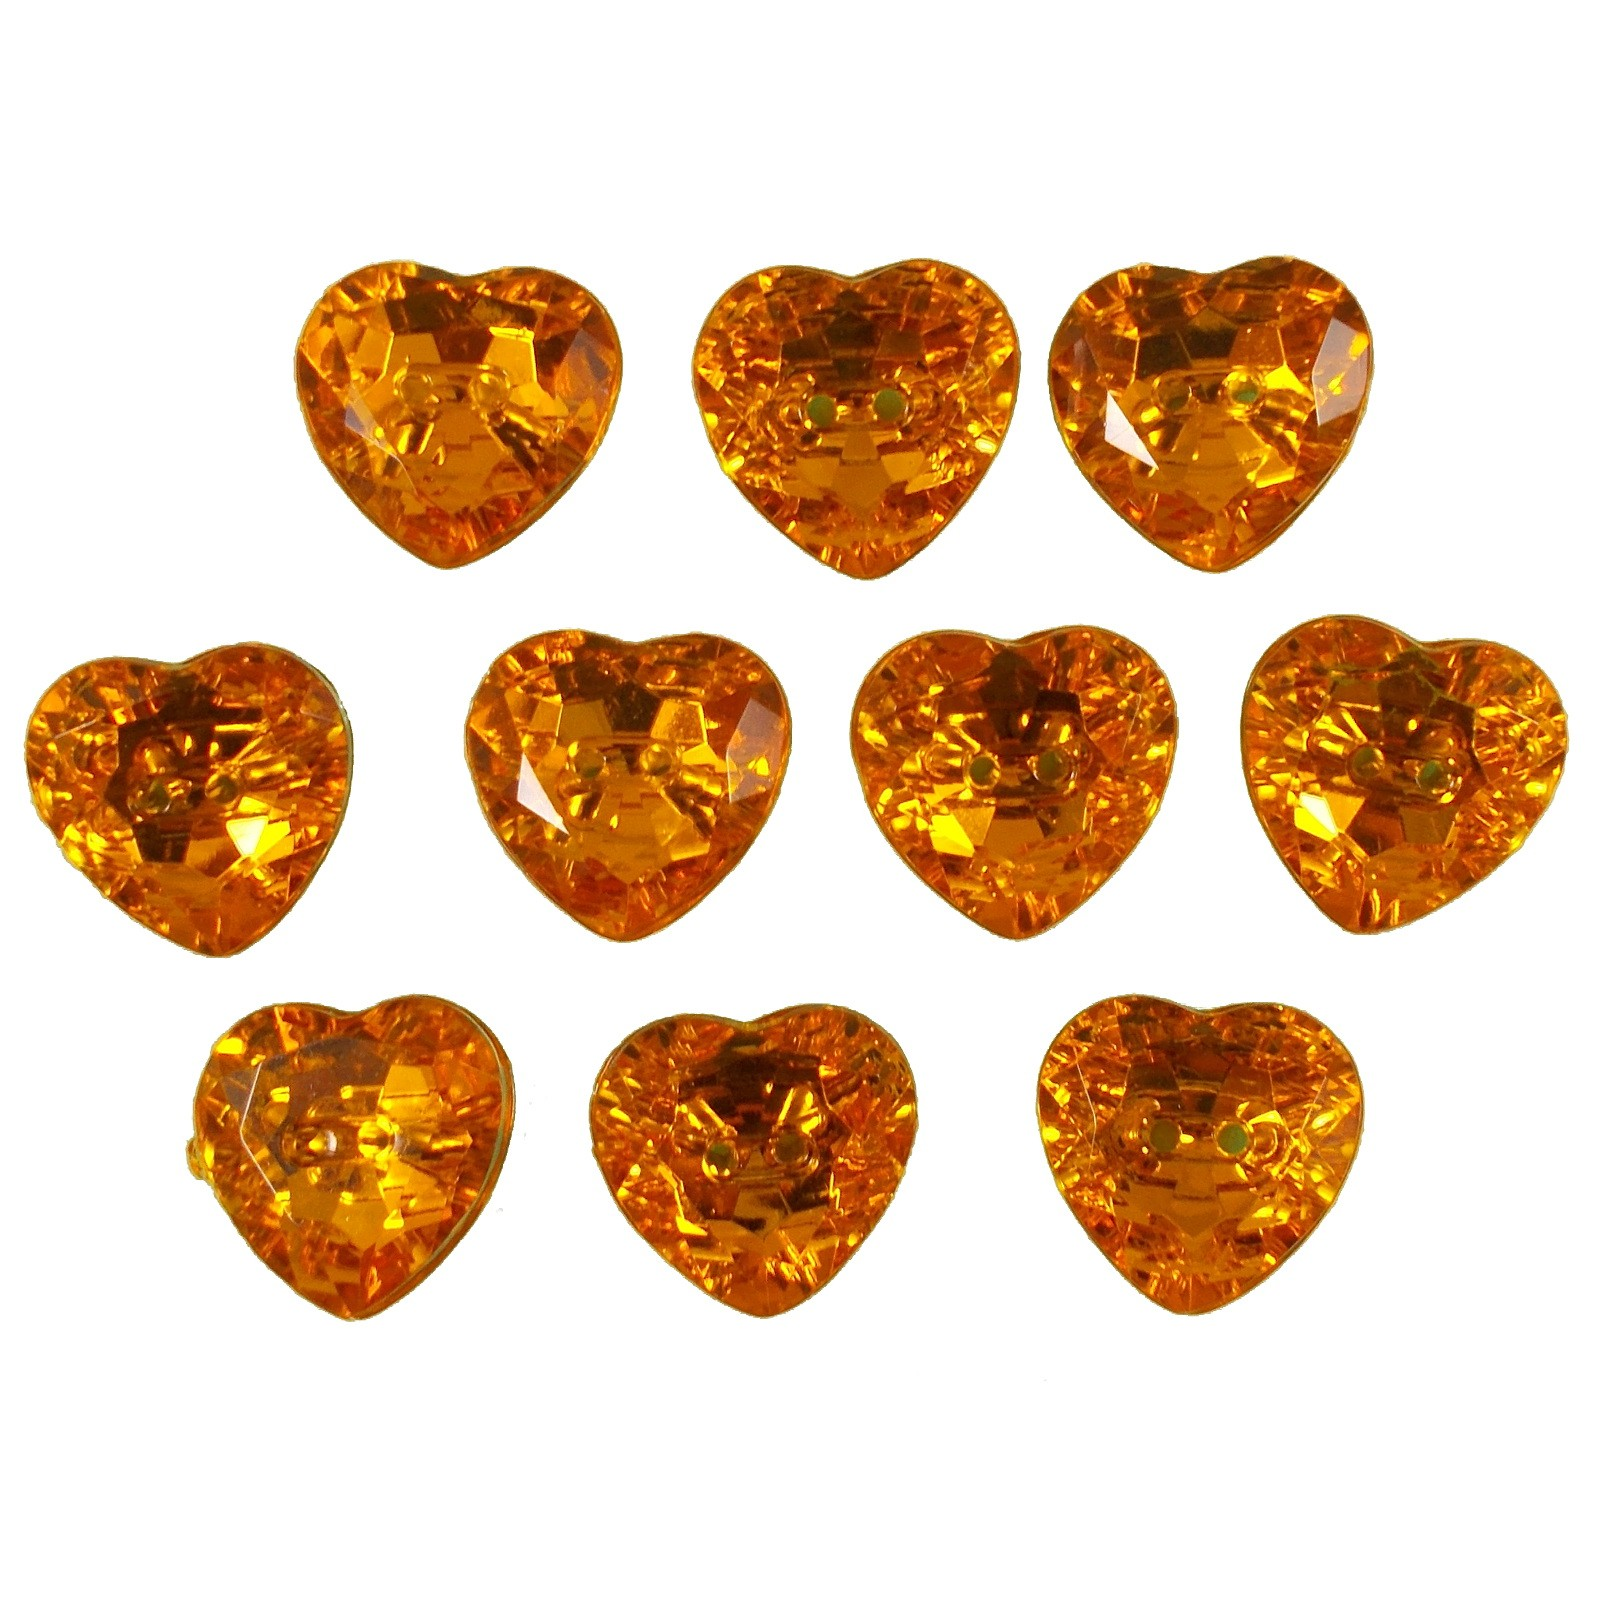 Acrylic Crystal Effect Heart Shape Buttons 12mm Amber Pack of 10